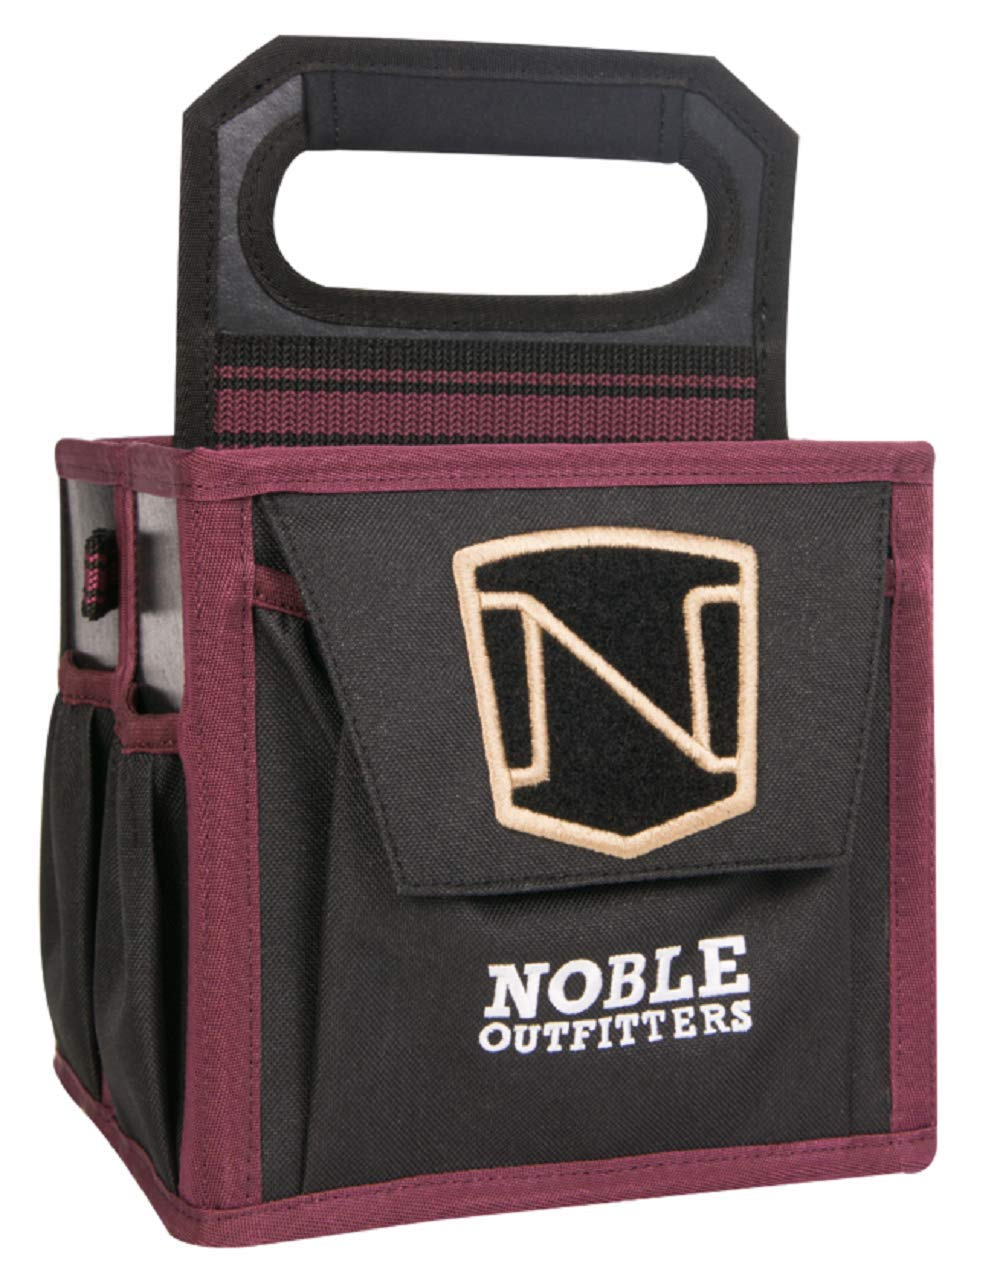 Noble Outfitters ミニ馬具 道具 トートバッグ  ワインレッド(Merlot) B07M7T3D23